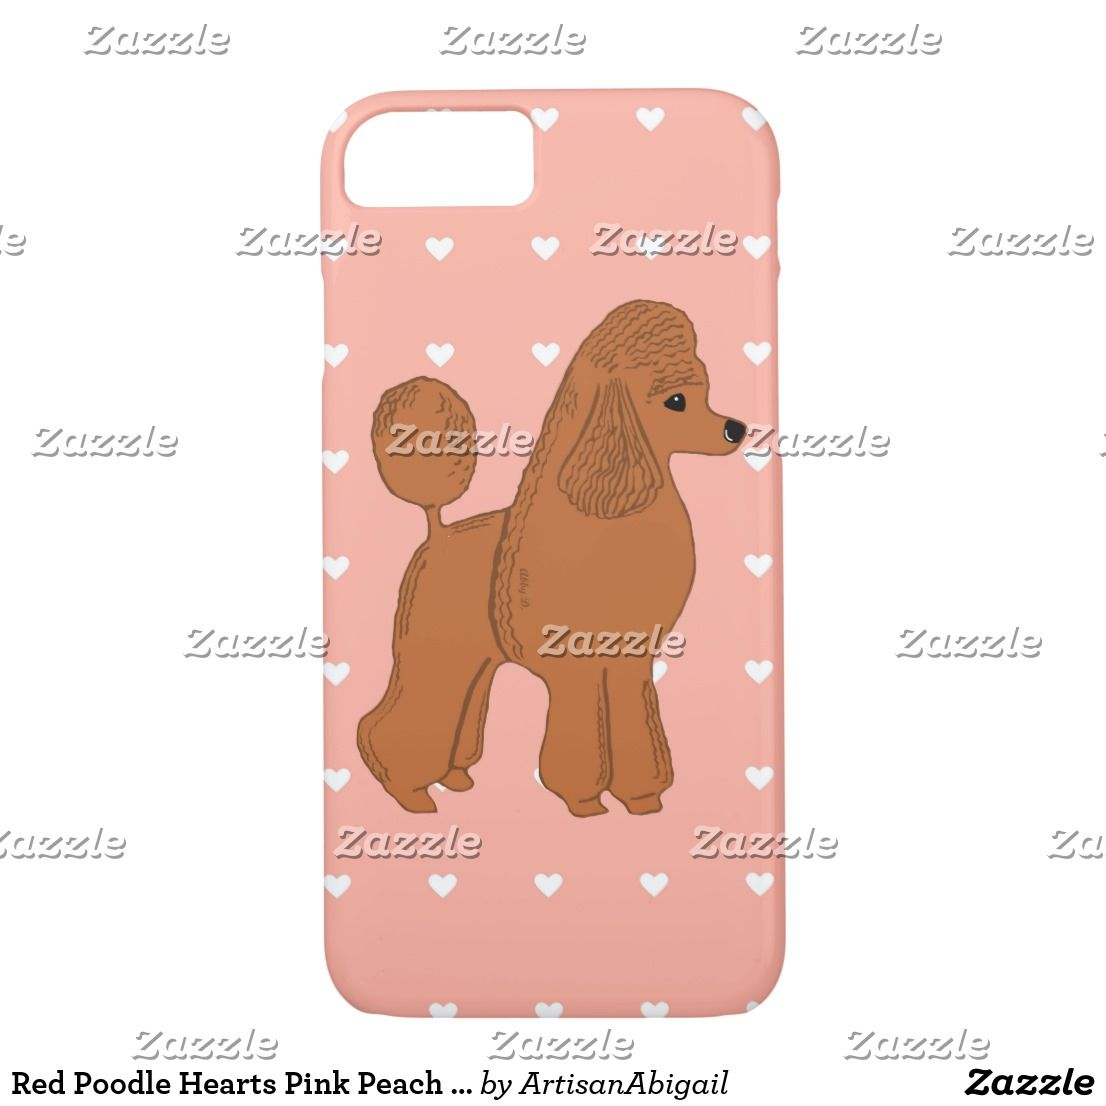 Red Poodle Hearts Pink Peach IPhone 8 7 Phone Case ArtisanAbigail At Zazzle